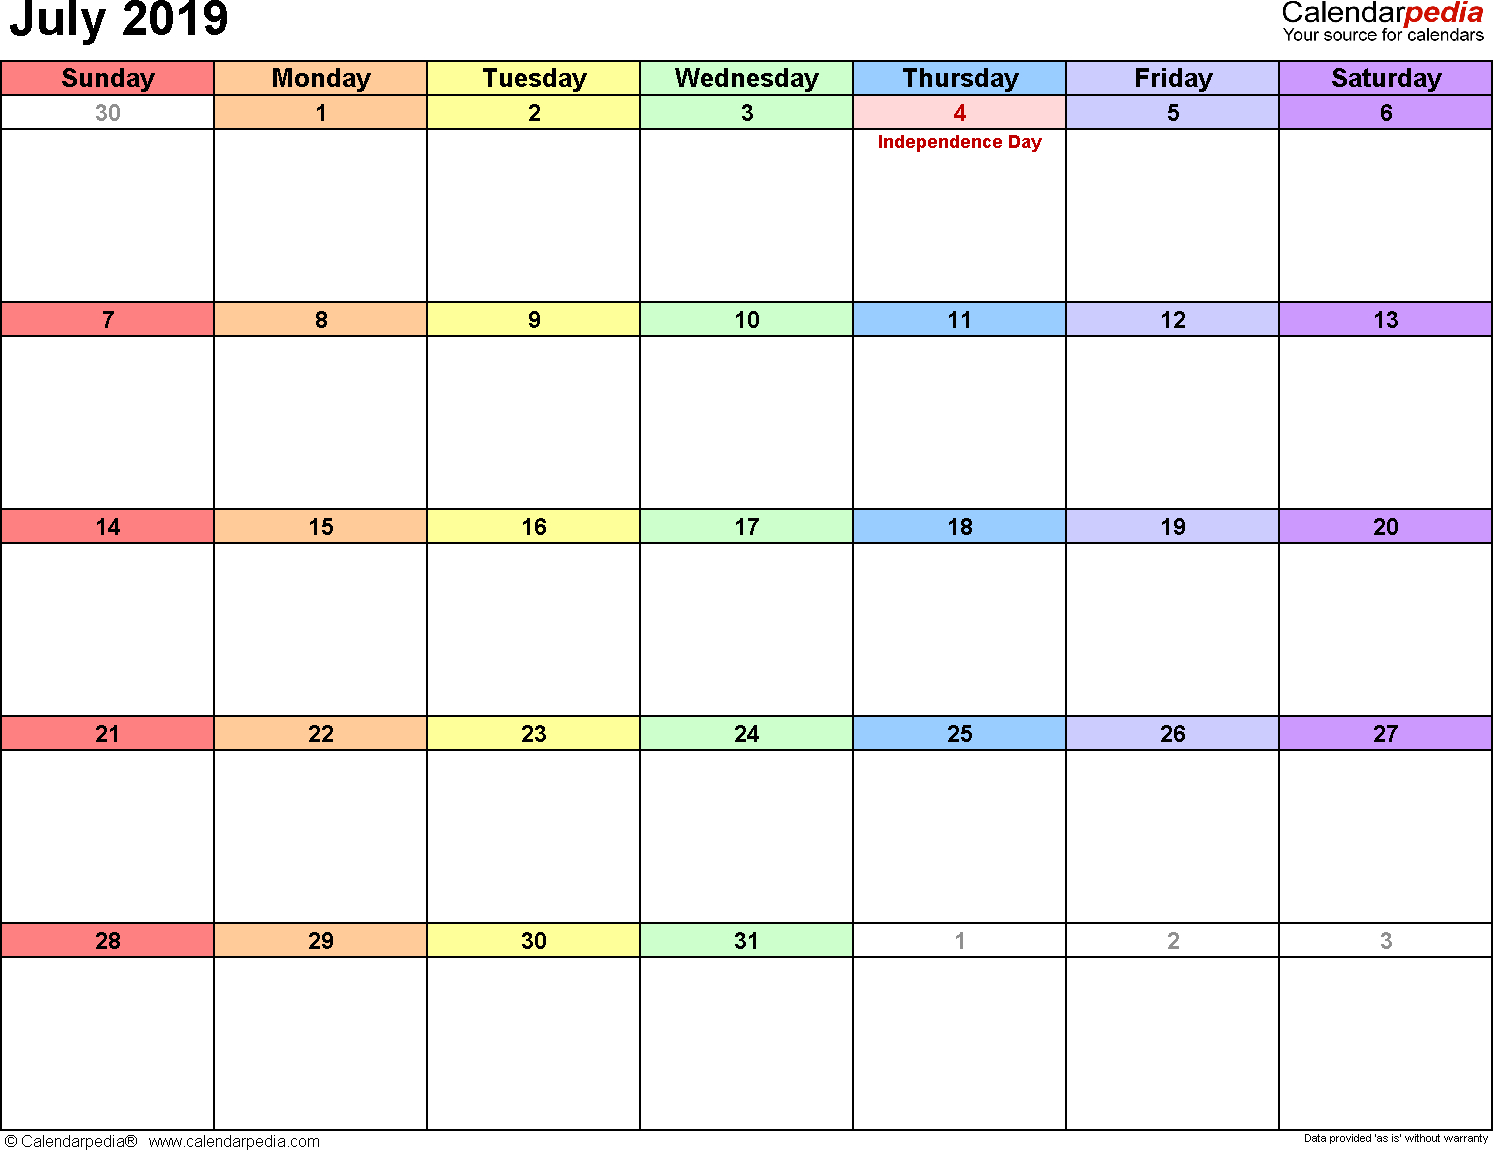 July 2019 Calendars For Word, Excel & Pdf within Printable Weekly Calendar Template July